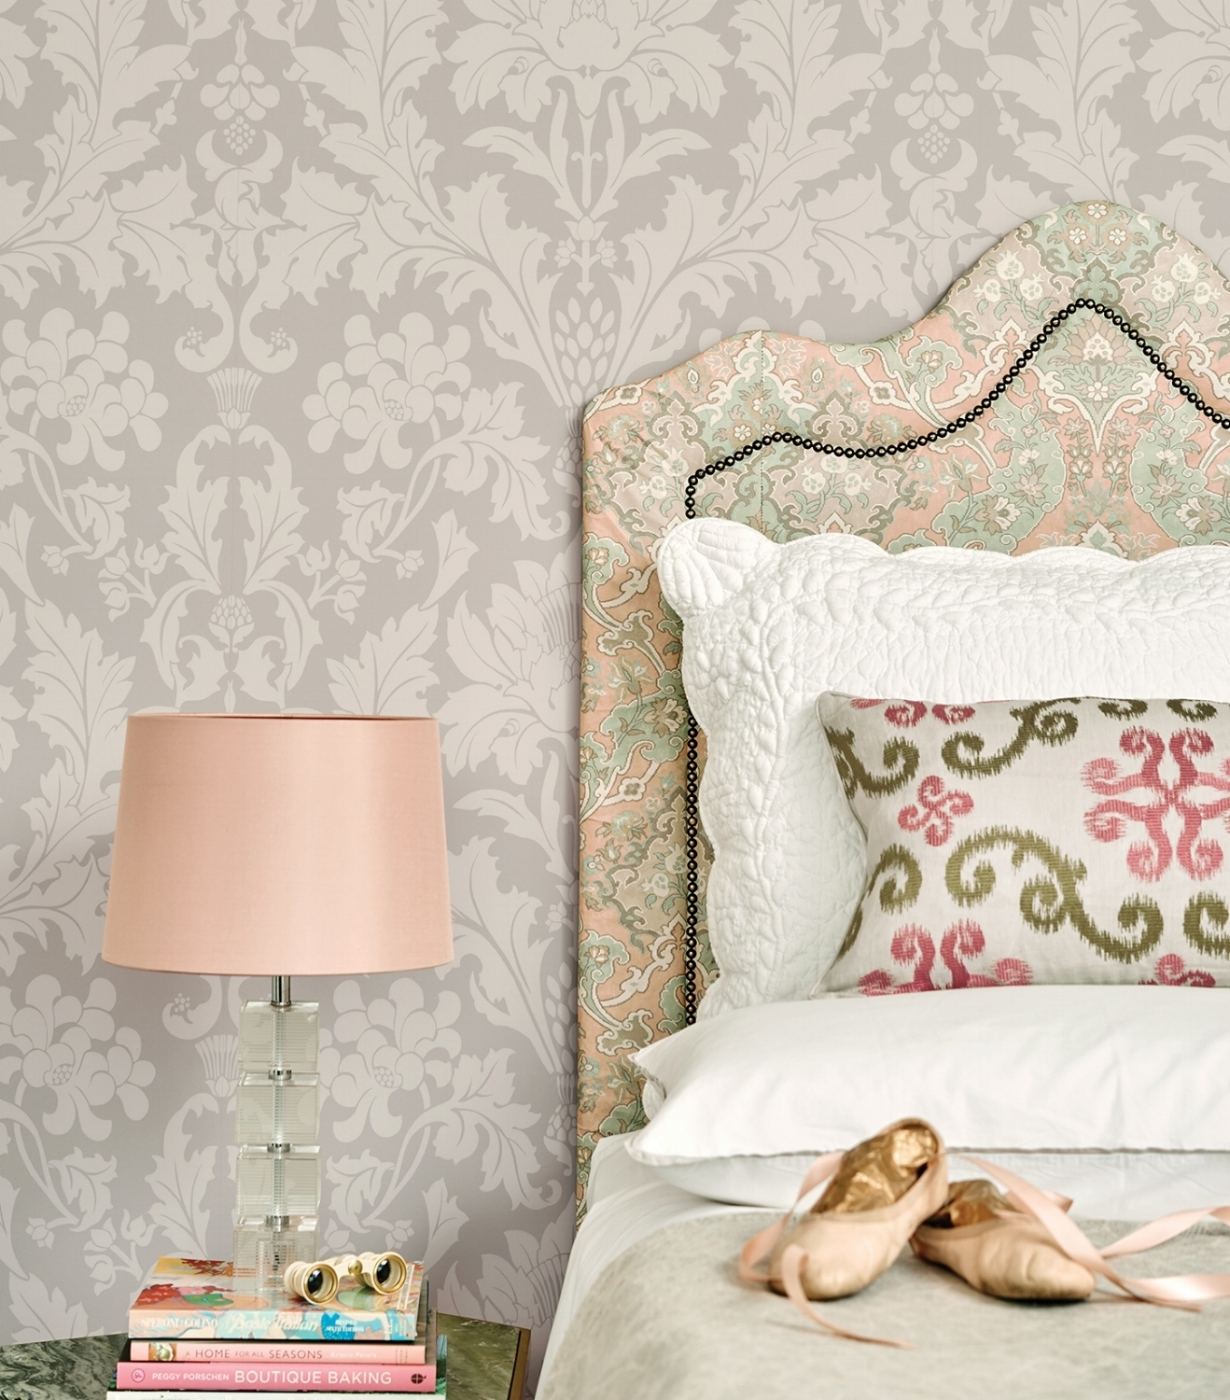 A trained professional will help you create a plan and collaborate with you on how you want your home to look. Shown: Cole & Son's Mariinsky damask Fonteyn, named after the Royal Ballet's prima ballerina. The two-toned design gives a soft, matt appearance. Available at Kravet to-the-trade showroom, Naples. Photo: courtesy of Kravet.